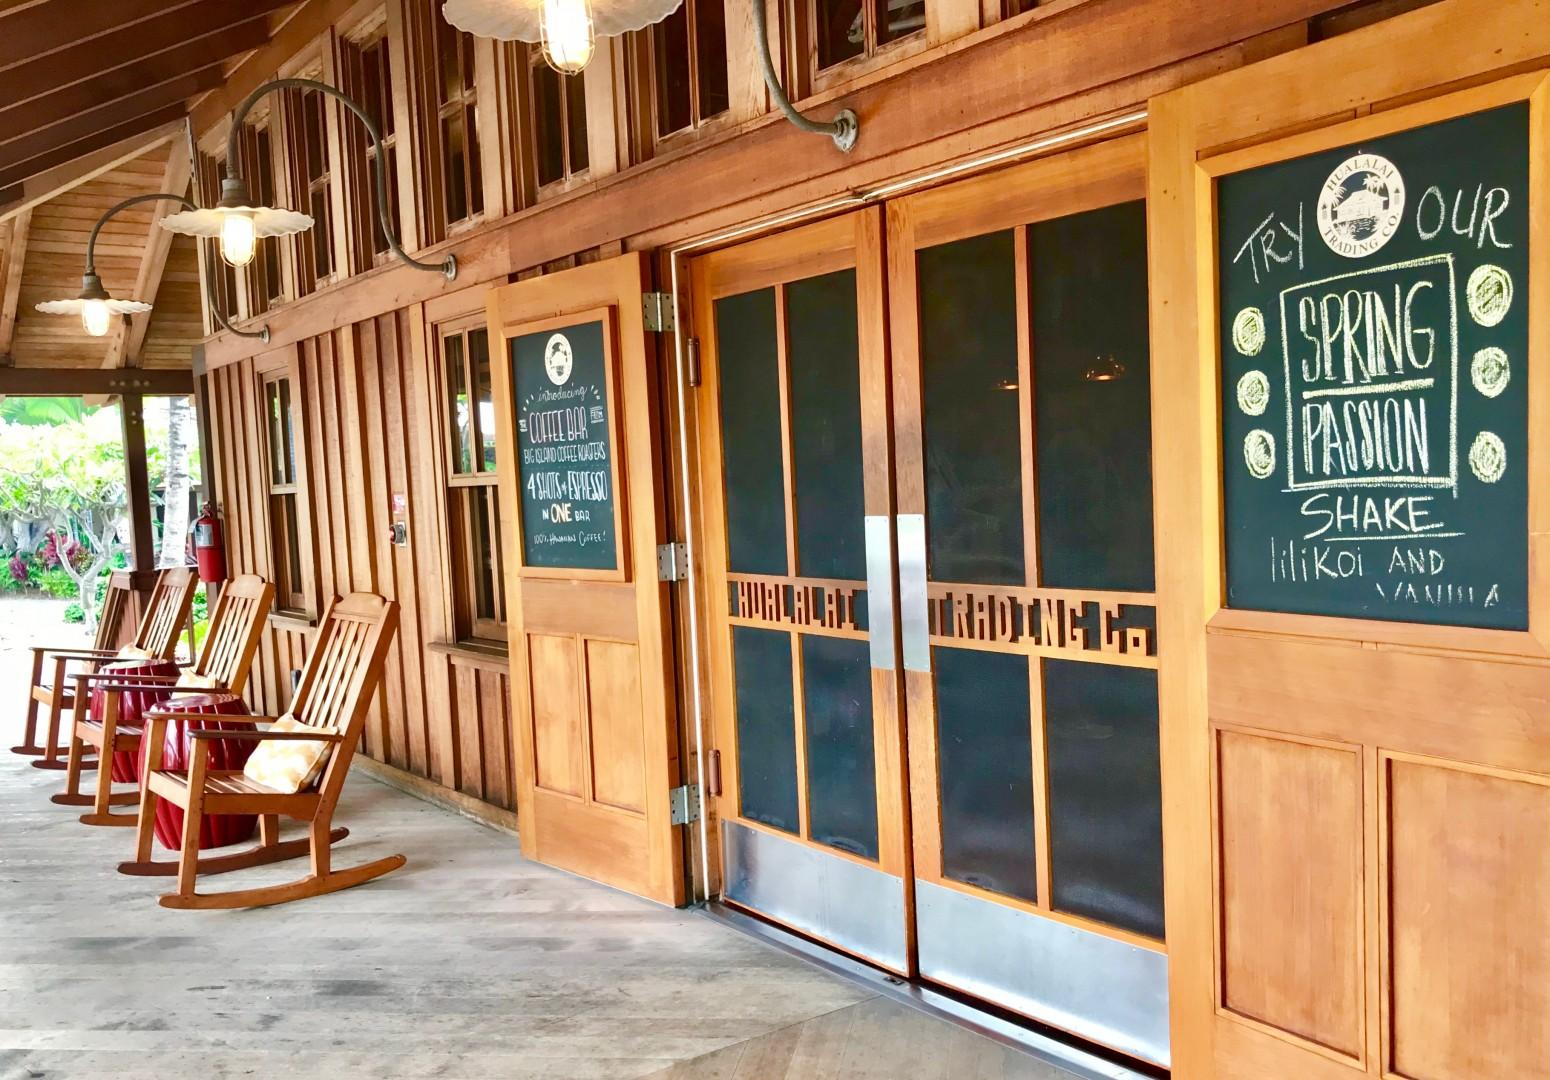 Four Seasons Resort Trading Company General Store, Coffee Shop and Deli